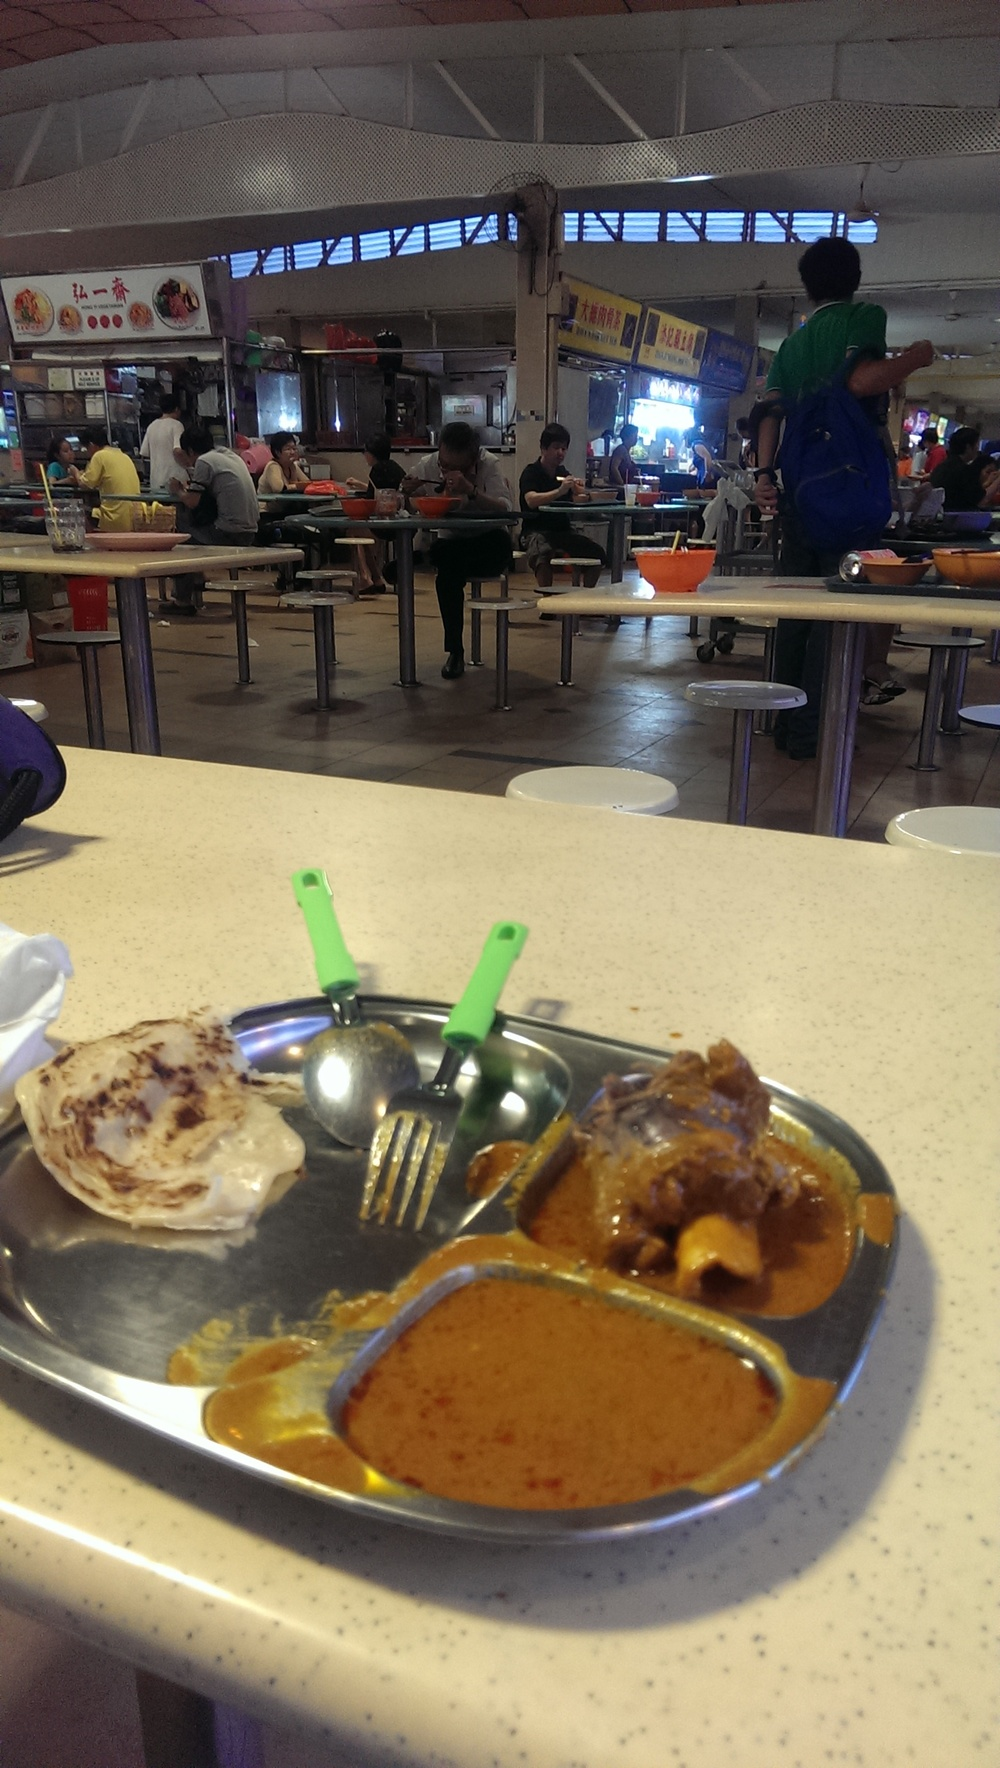 mutton shank and roti in food court